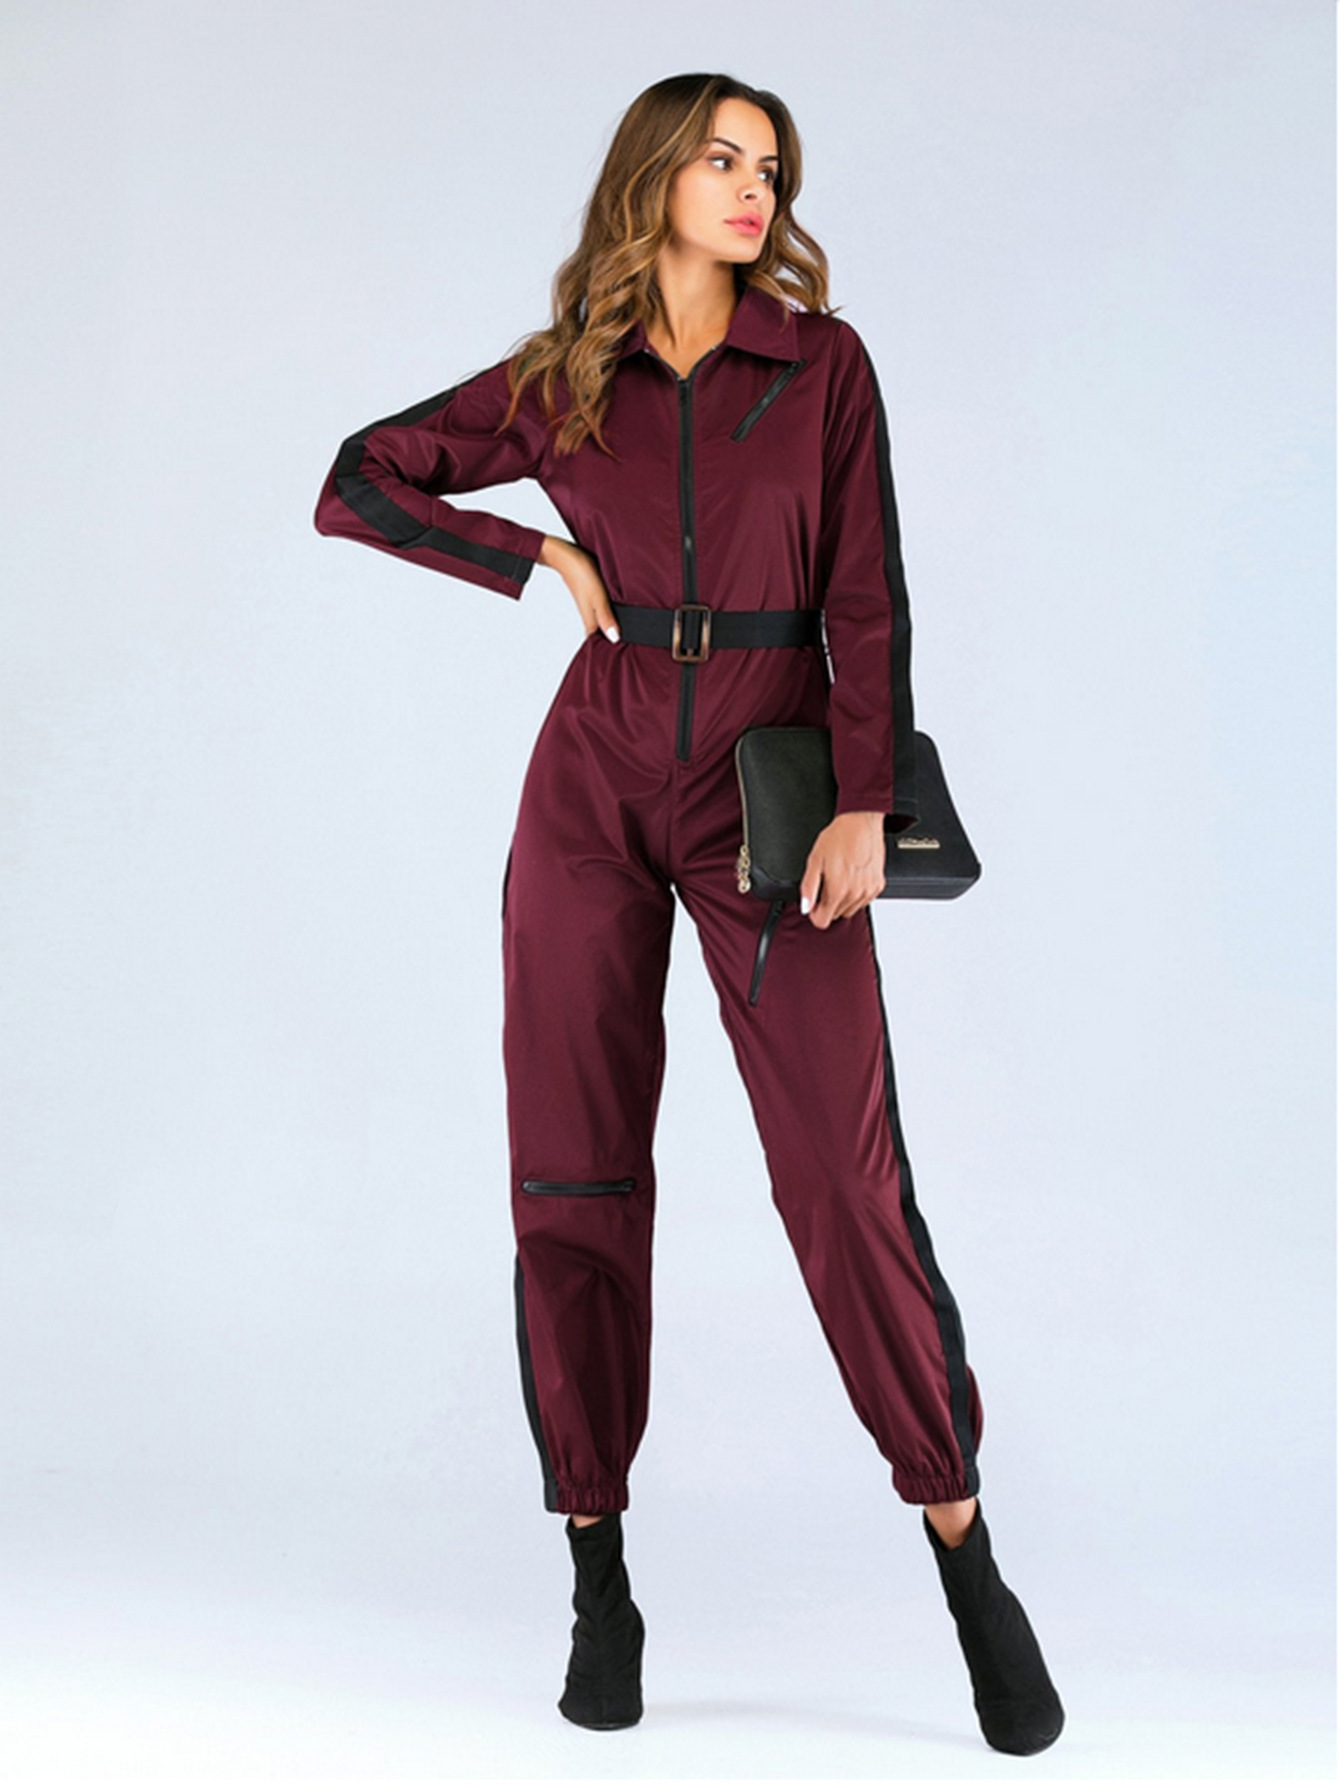 Autumn Patchwork Zipper Jumpsuit Casual Long Sleeve Turn-down Callor Overalls For Women With Belt Pencil Pants Women Jumpsuit